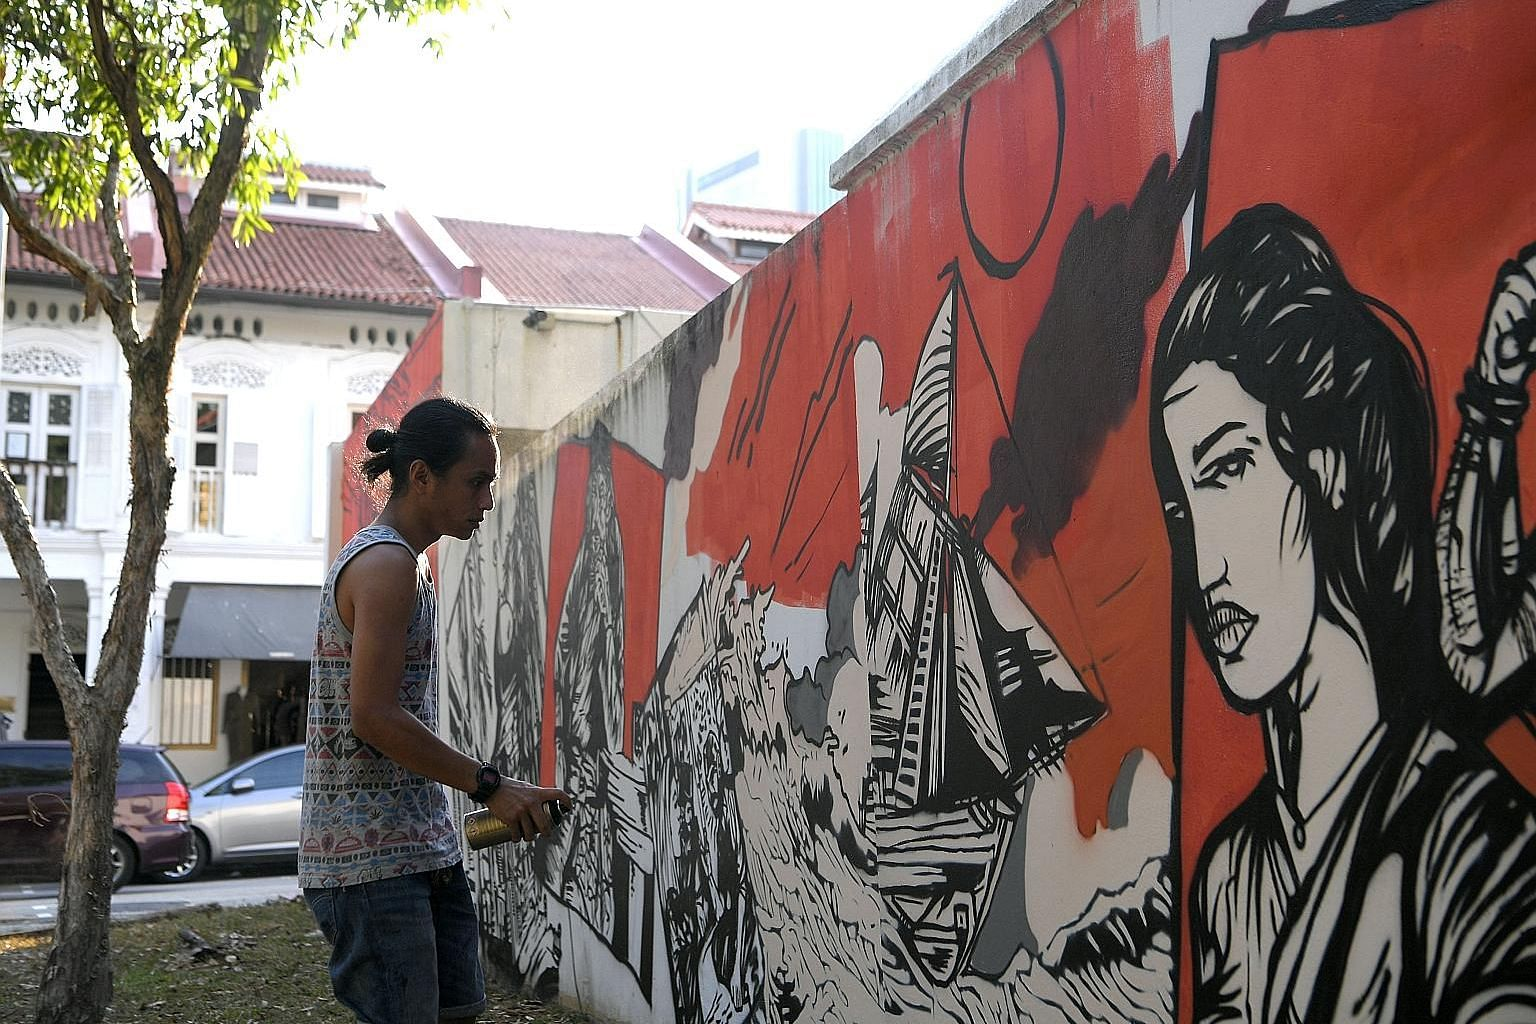 Artist Zul Othman shown here painting the wall surrounding Gedung Kuning, a historical royal building in Kampong Glam. Mr Zul's mural tells the tale of Wak Cantuk, who went on a killing spree in the 1800s after his marriage proposal was rejected. Som